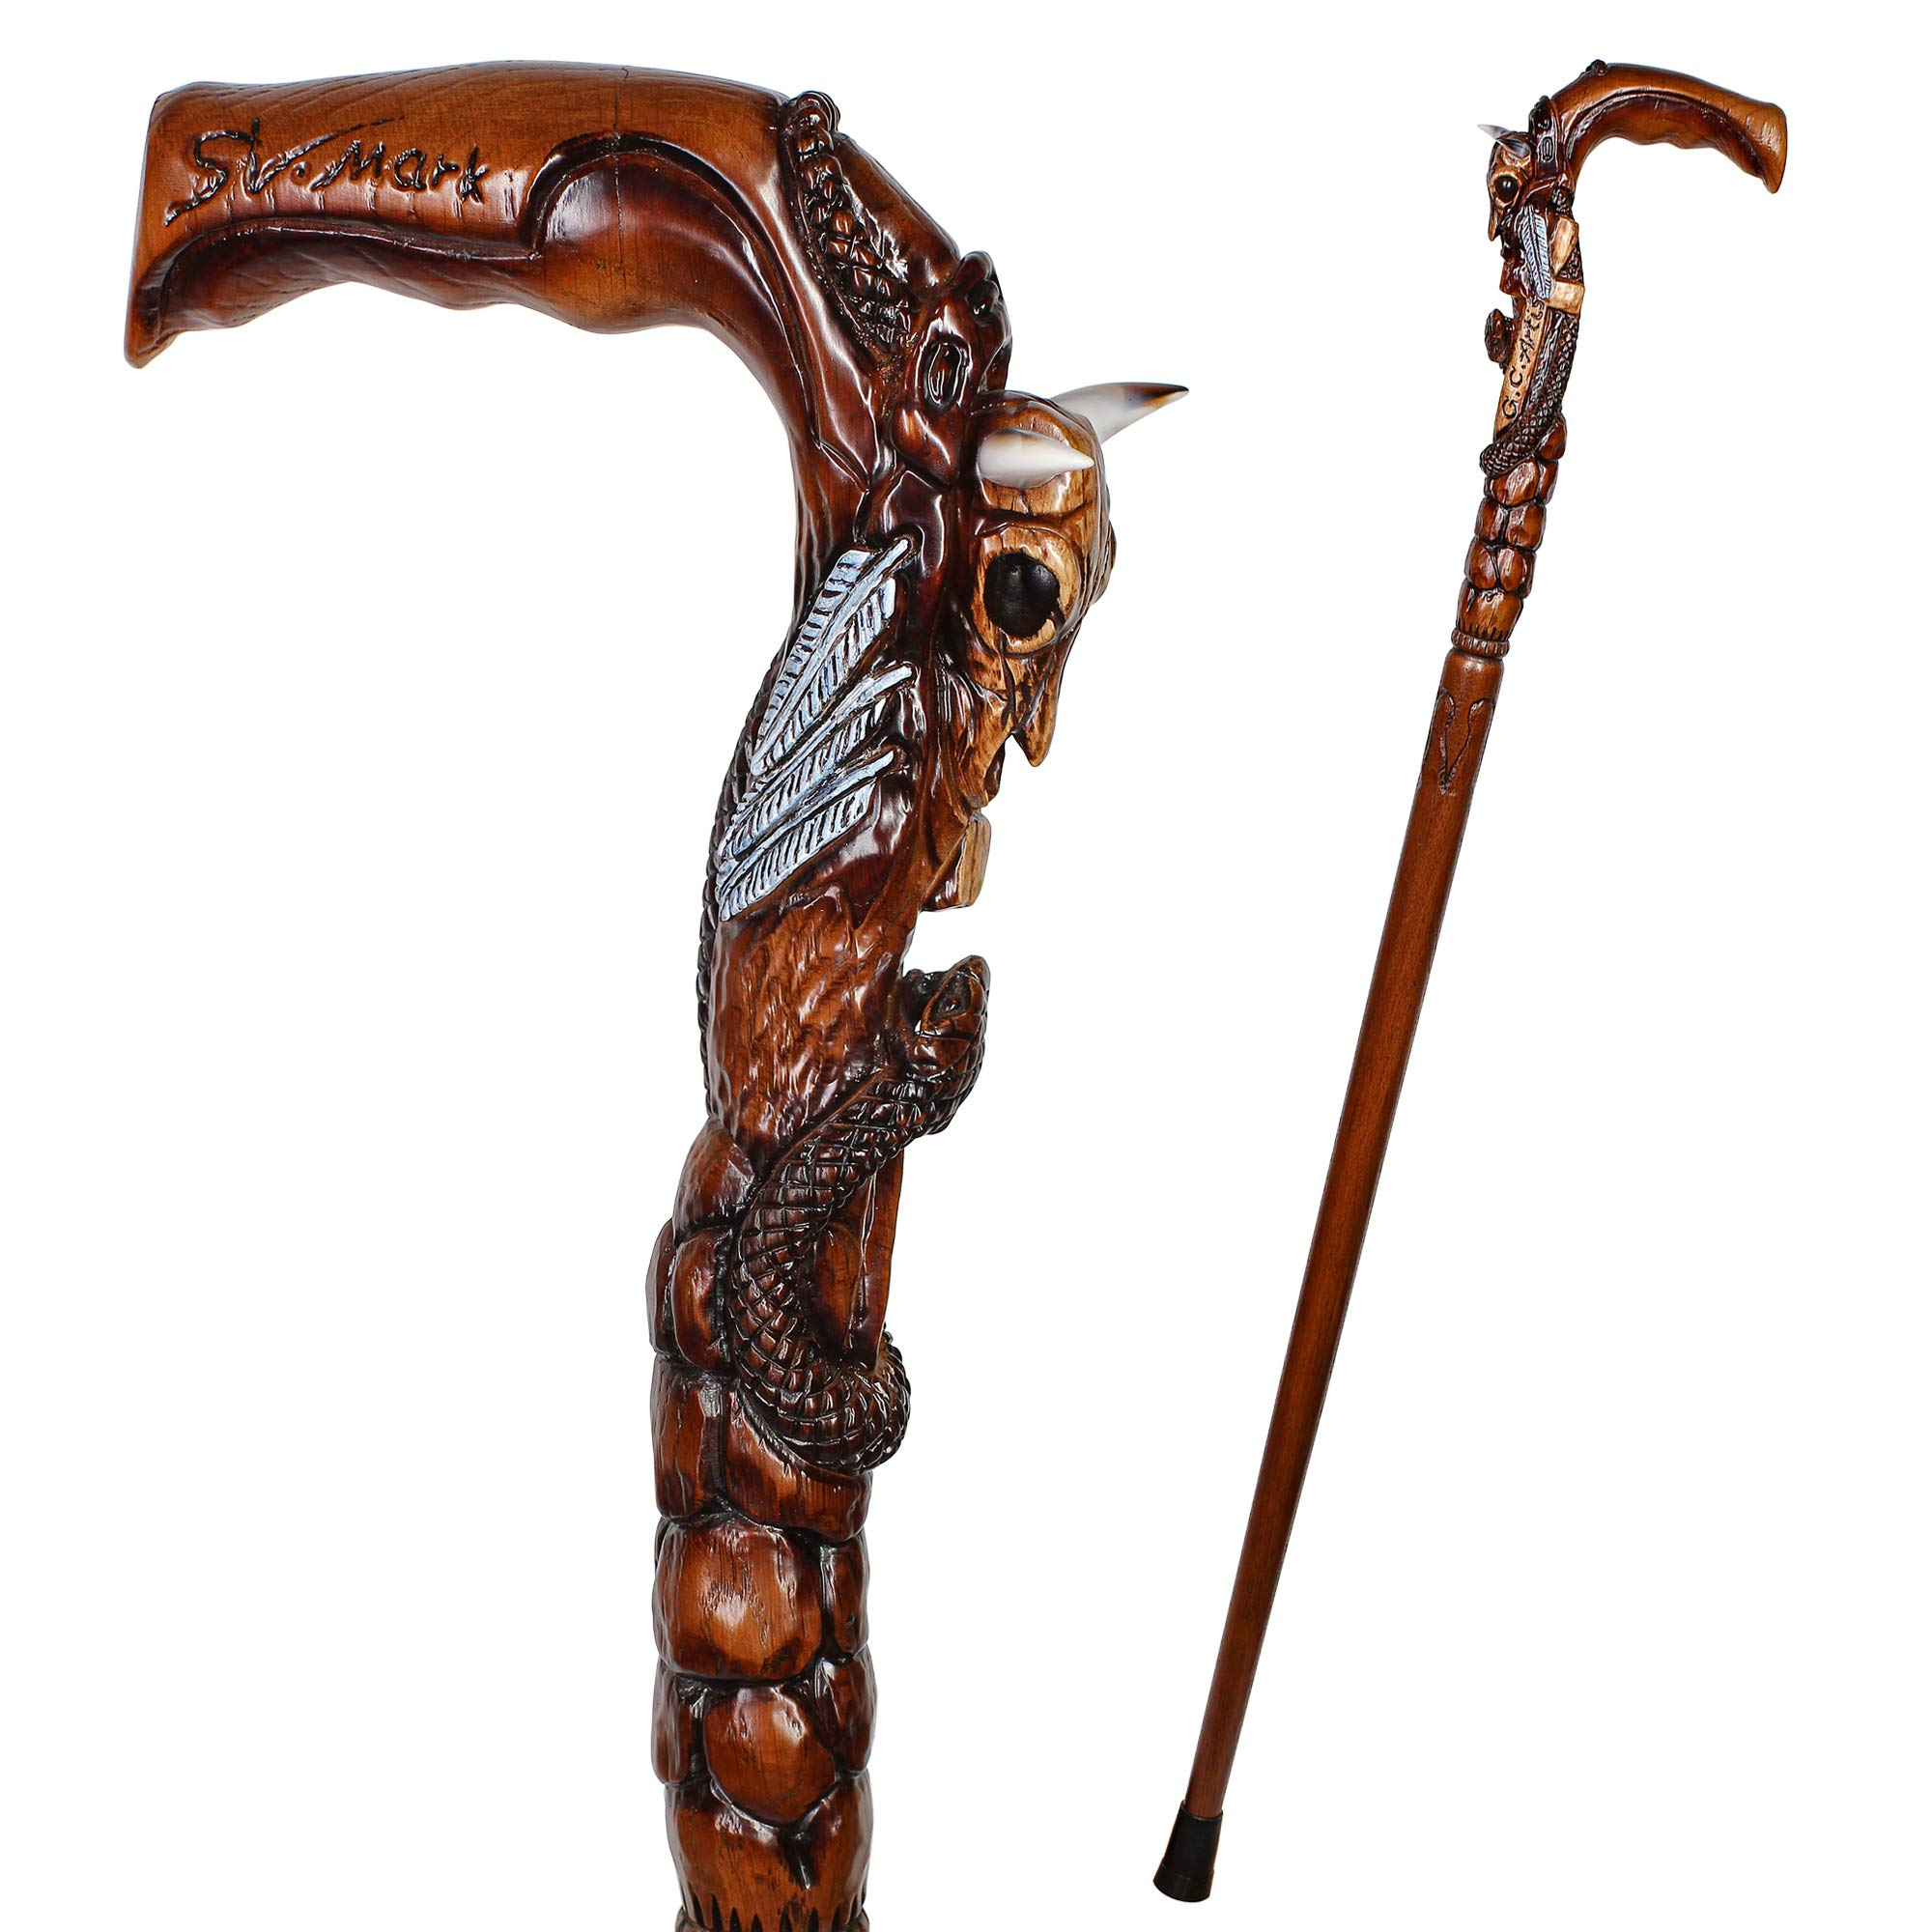 GC-Artis Snake & Bull Skull Walking Stick Wooden Walking Cane with American Buffalo Cow Horns Hand Carved Crafted Handle 36'' for Men Women White